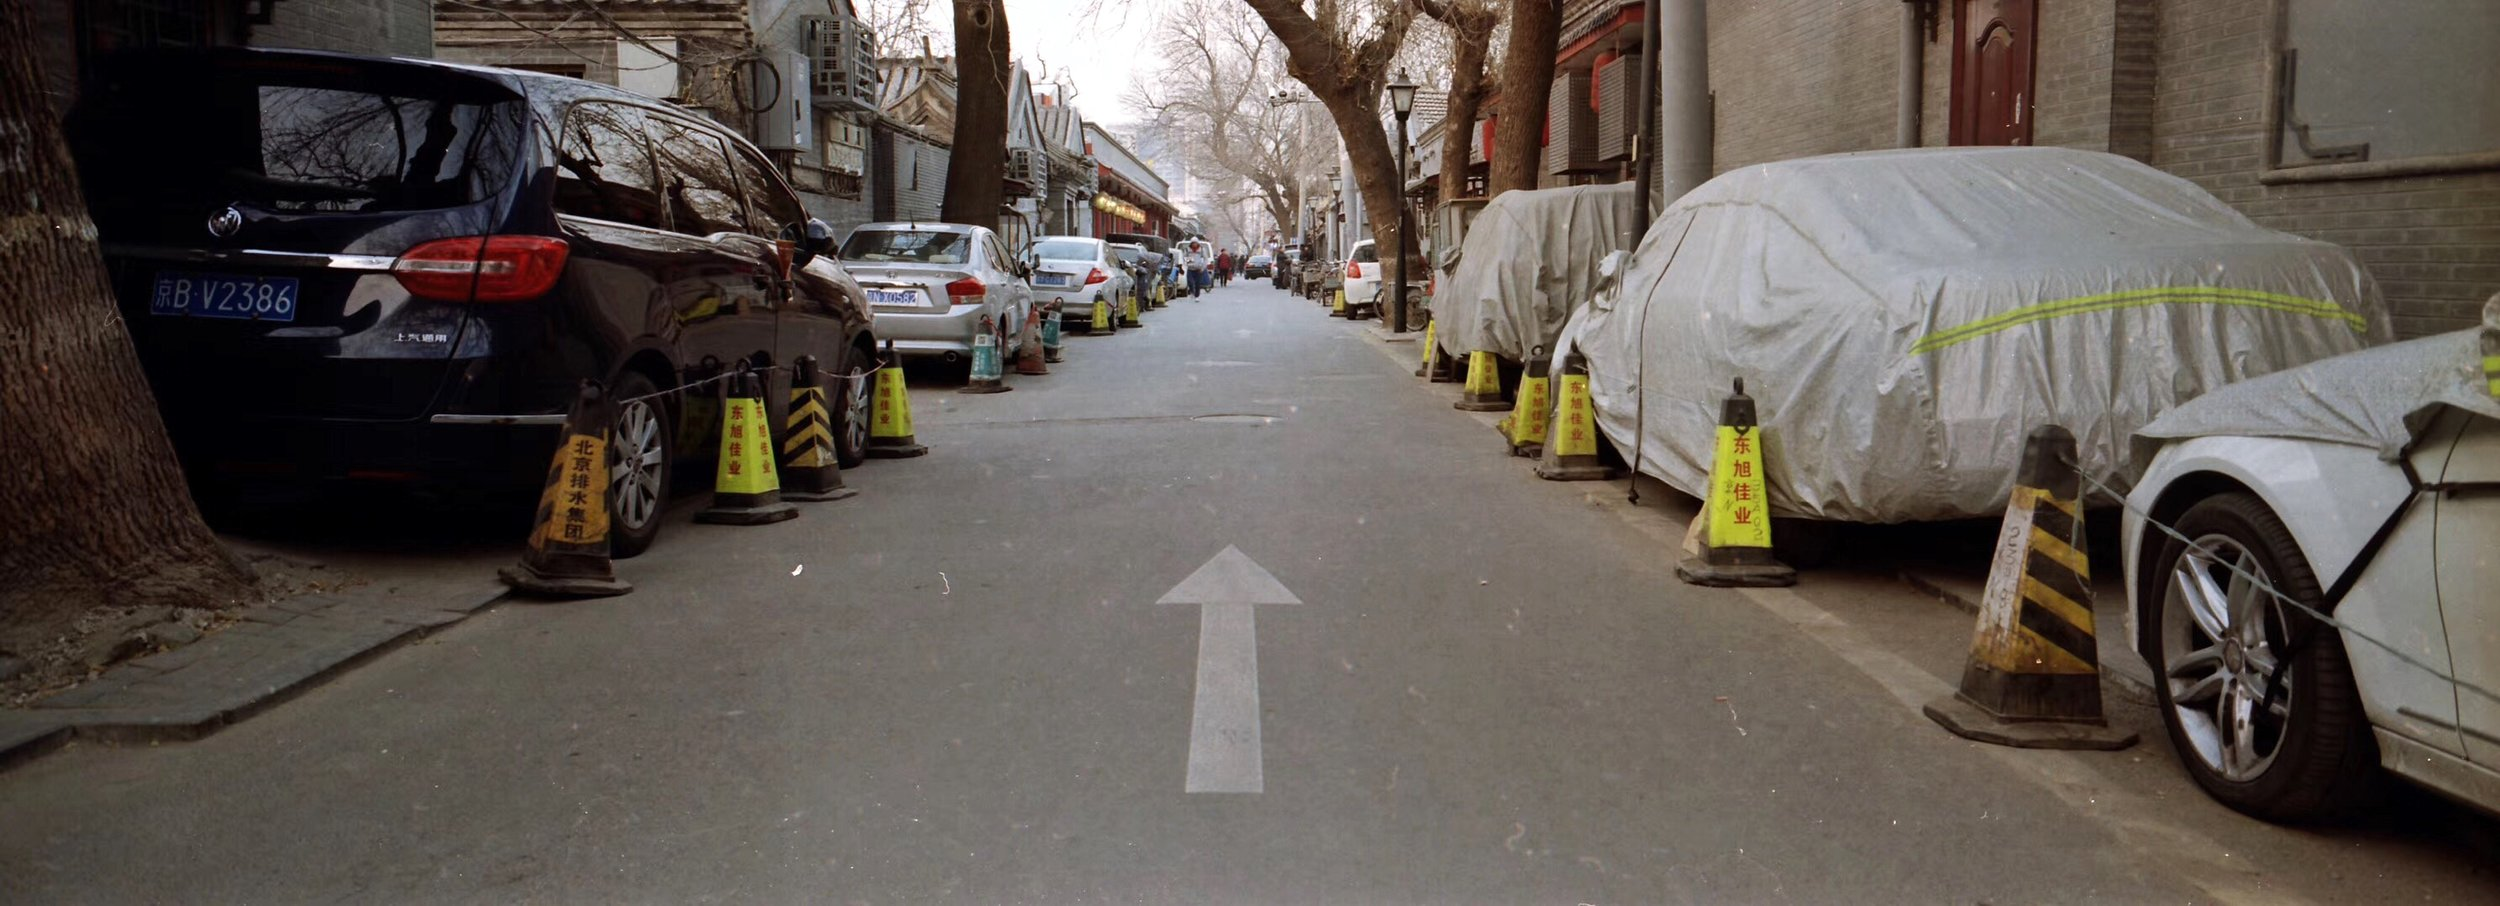 A street in the Hutongs in the city of Beijing in China